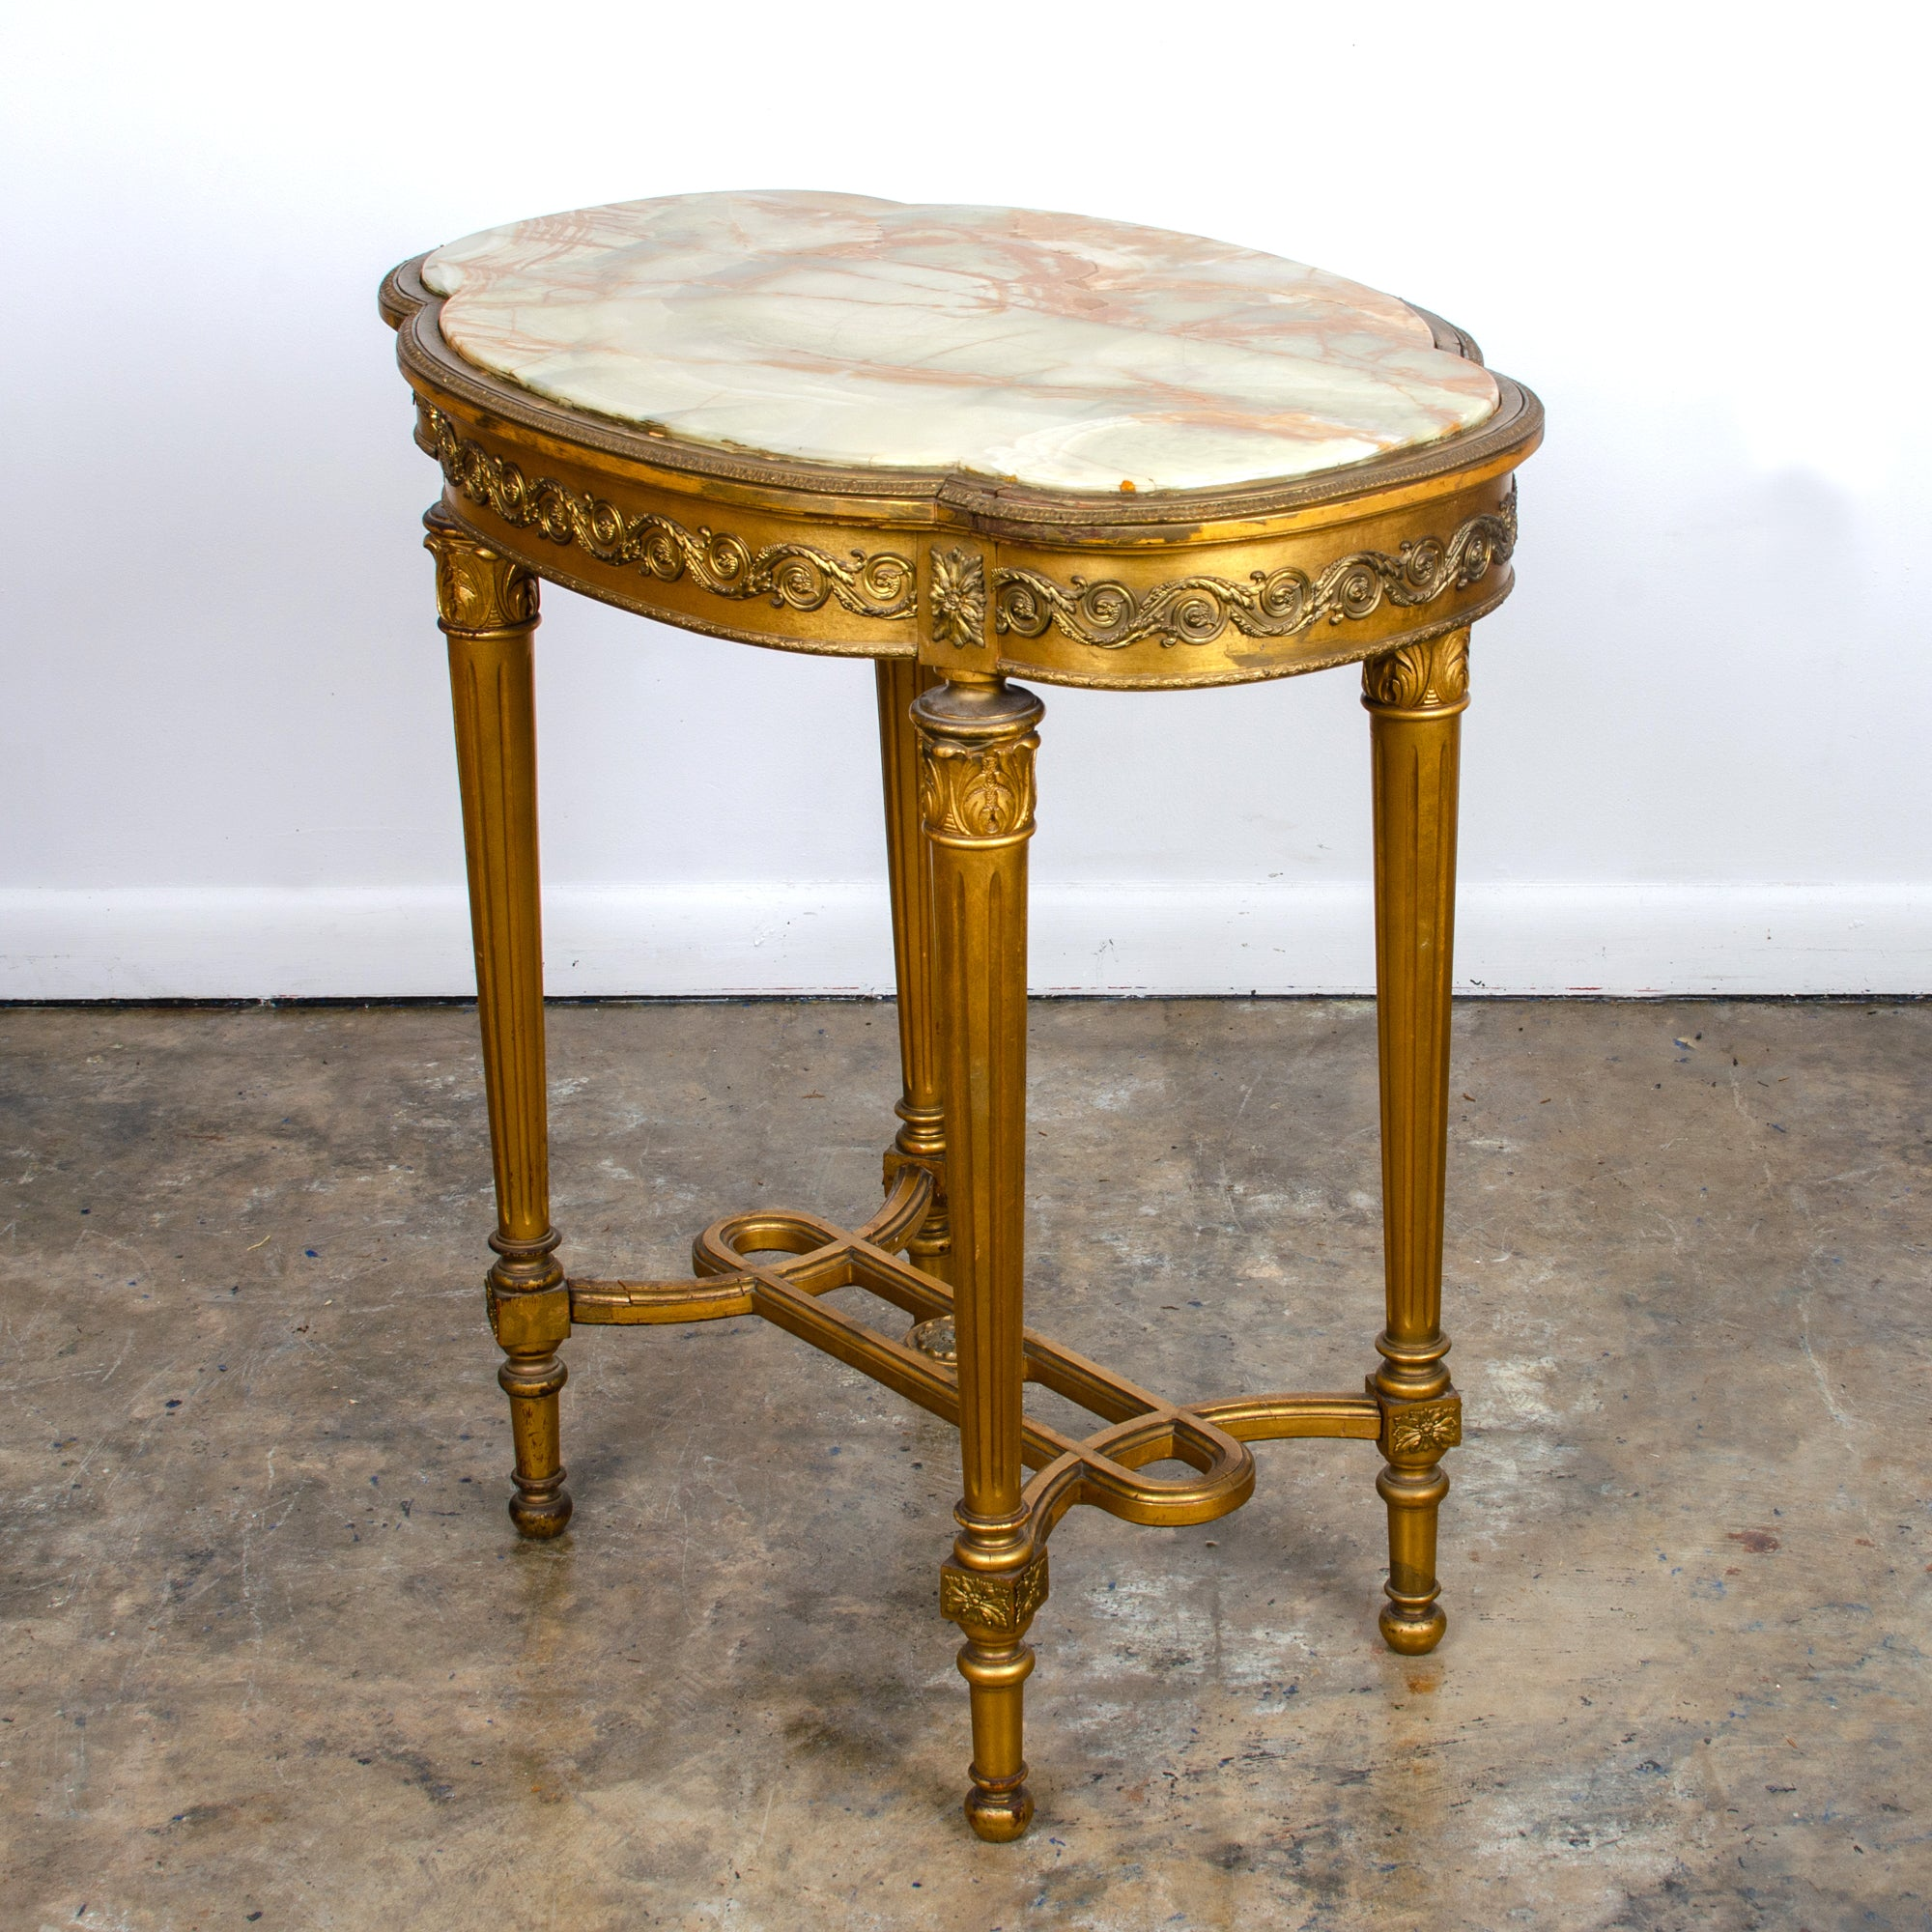 Louis XVI Style Onyx Top Gilded Center Table, c.1890